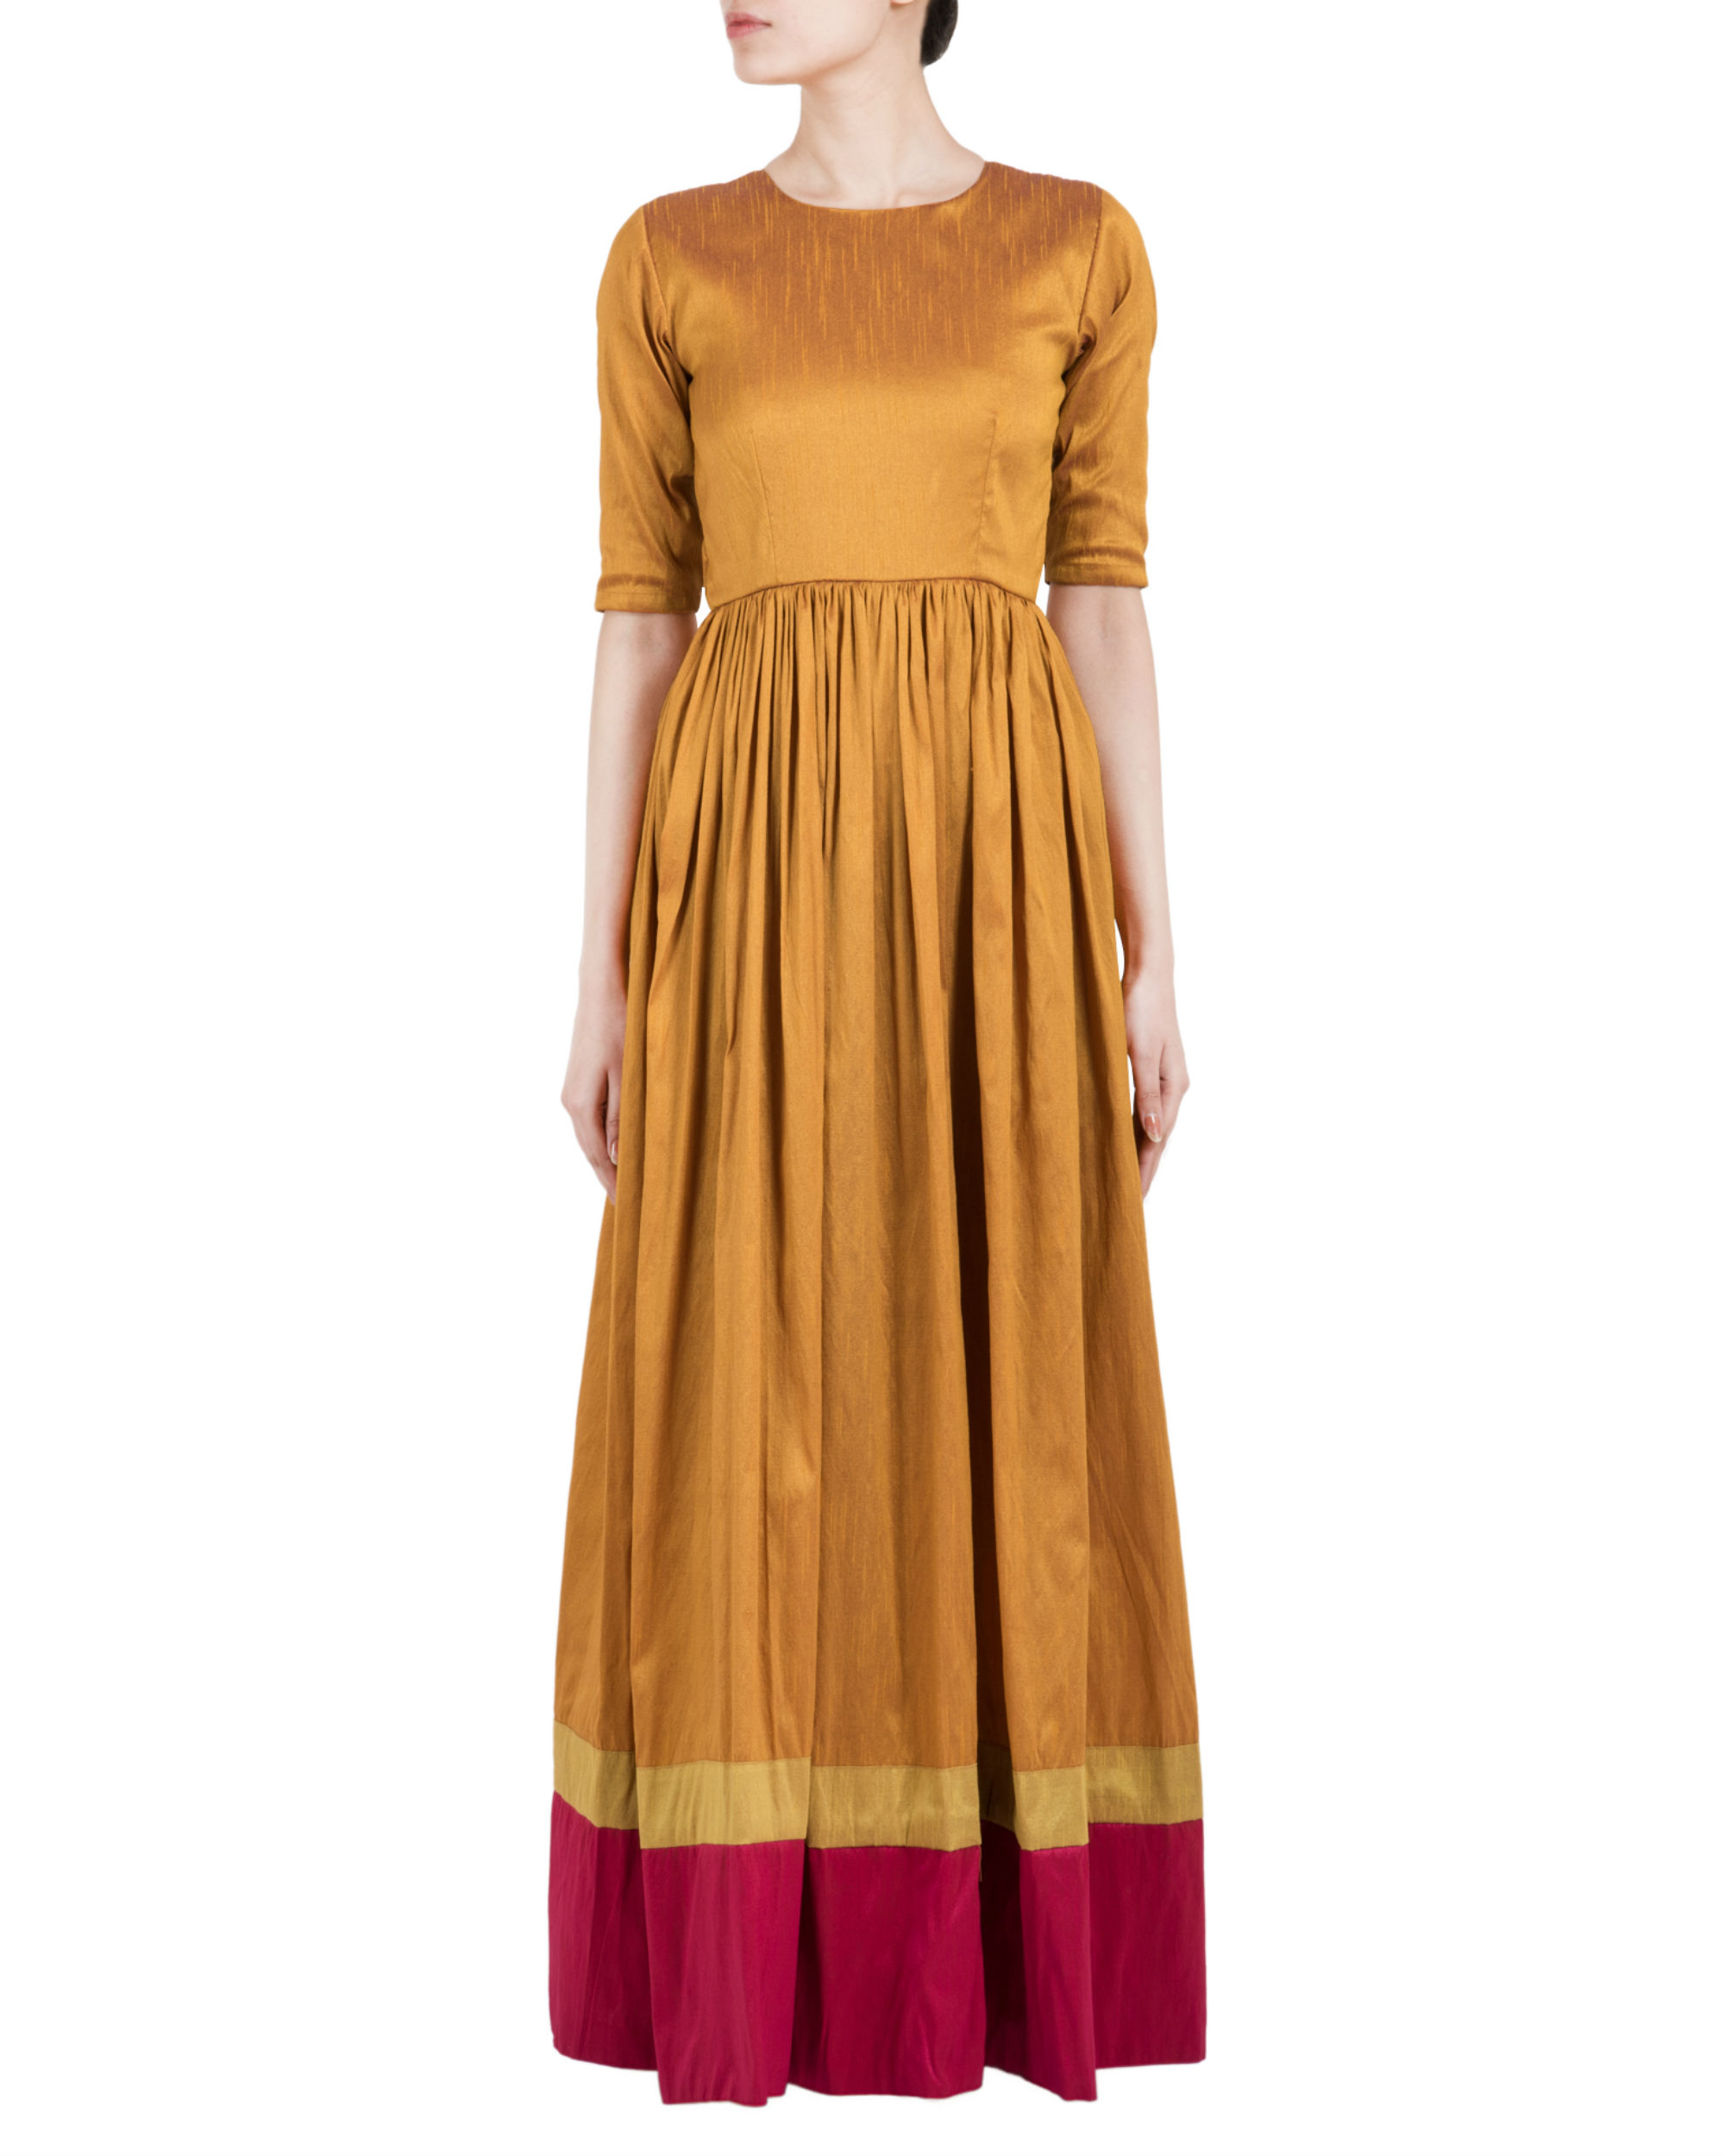 Gold brown and red double border  dress